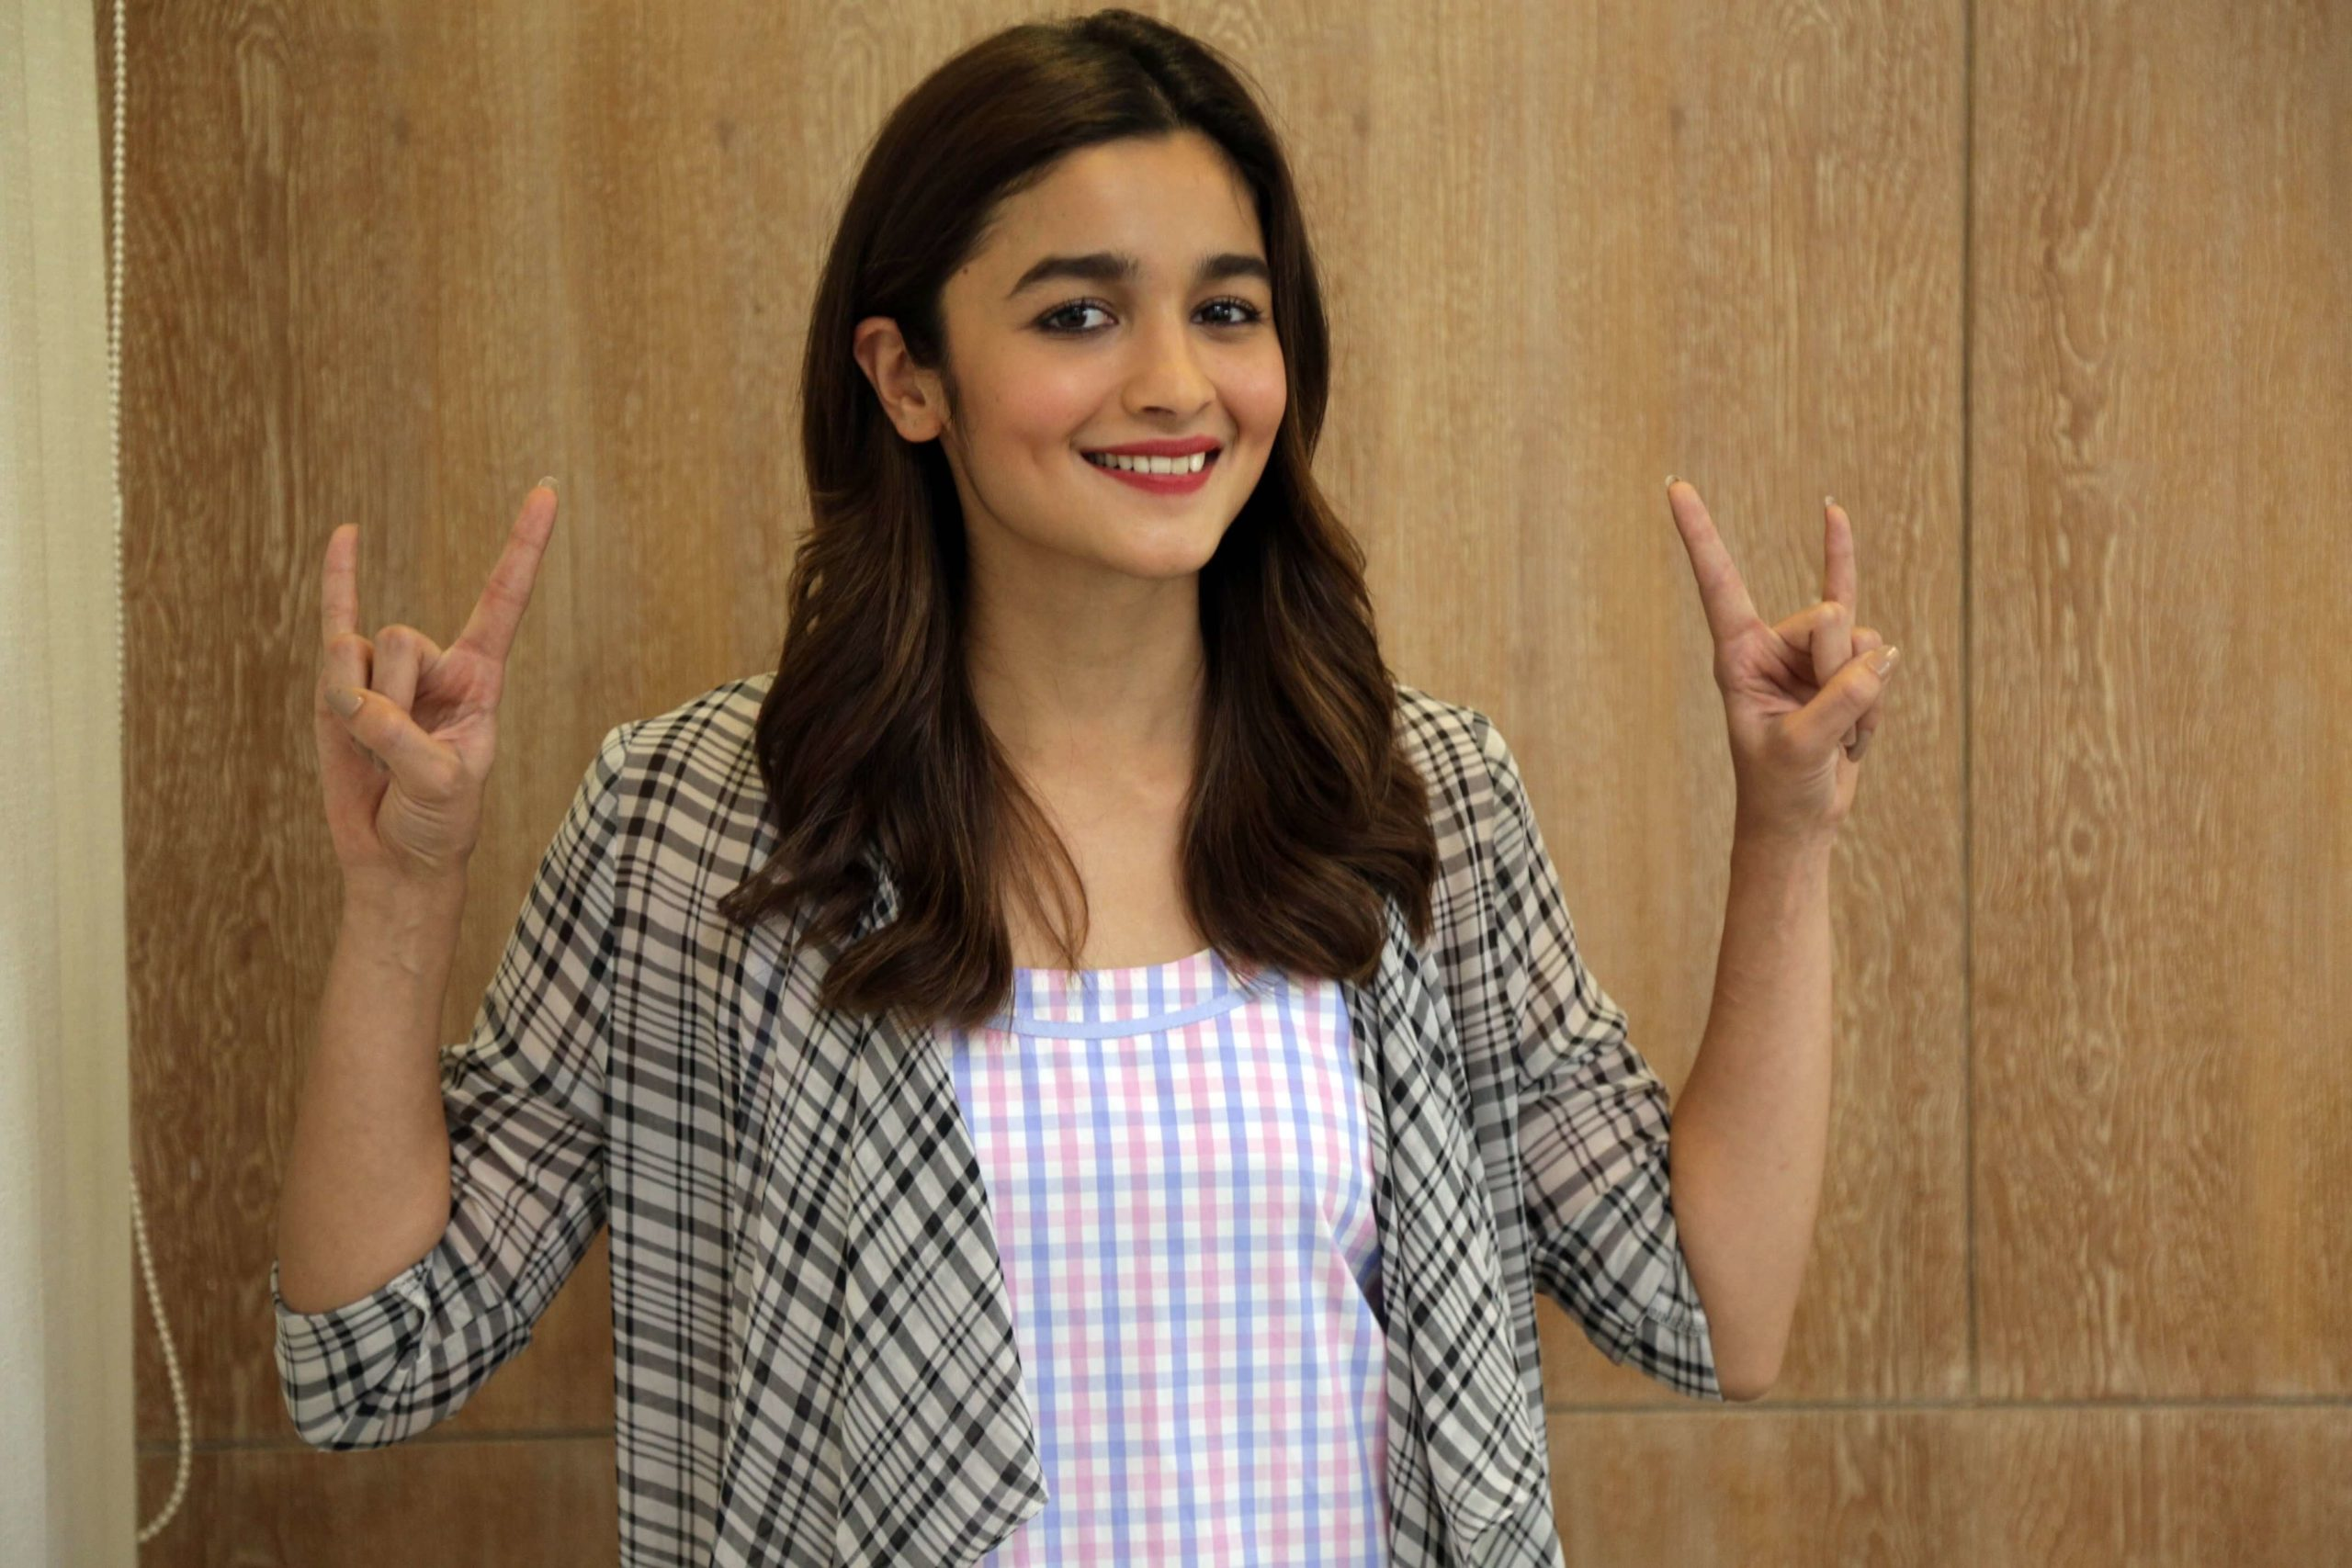 Alia Bhatt Marriage, Biography, Age, Photo, Net Worth, Height, Boyfriend, Images, Date Of Birth, Mother, Birthday Date, Sister, In Saree, Husband, Father (1)